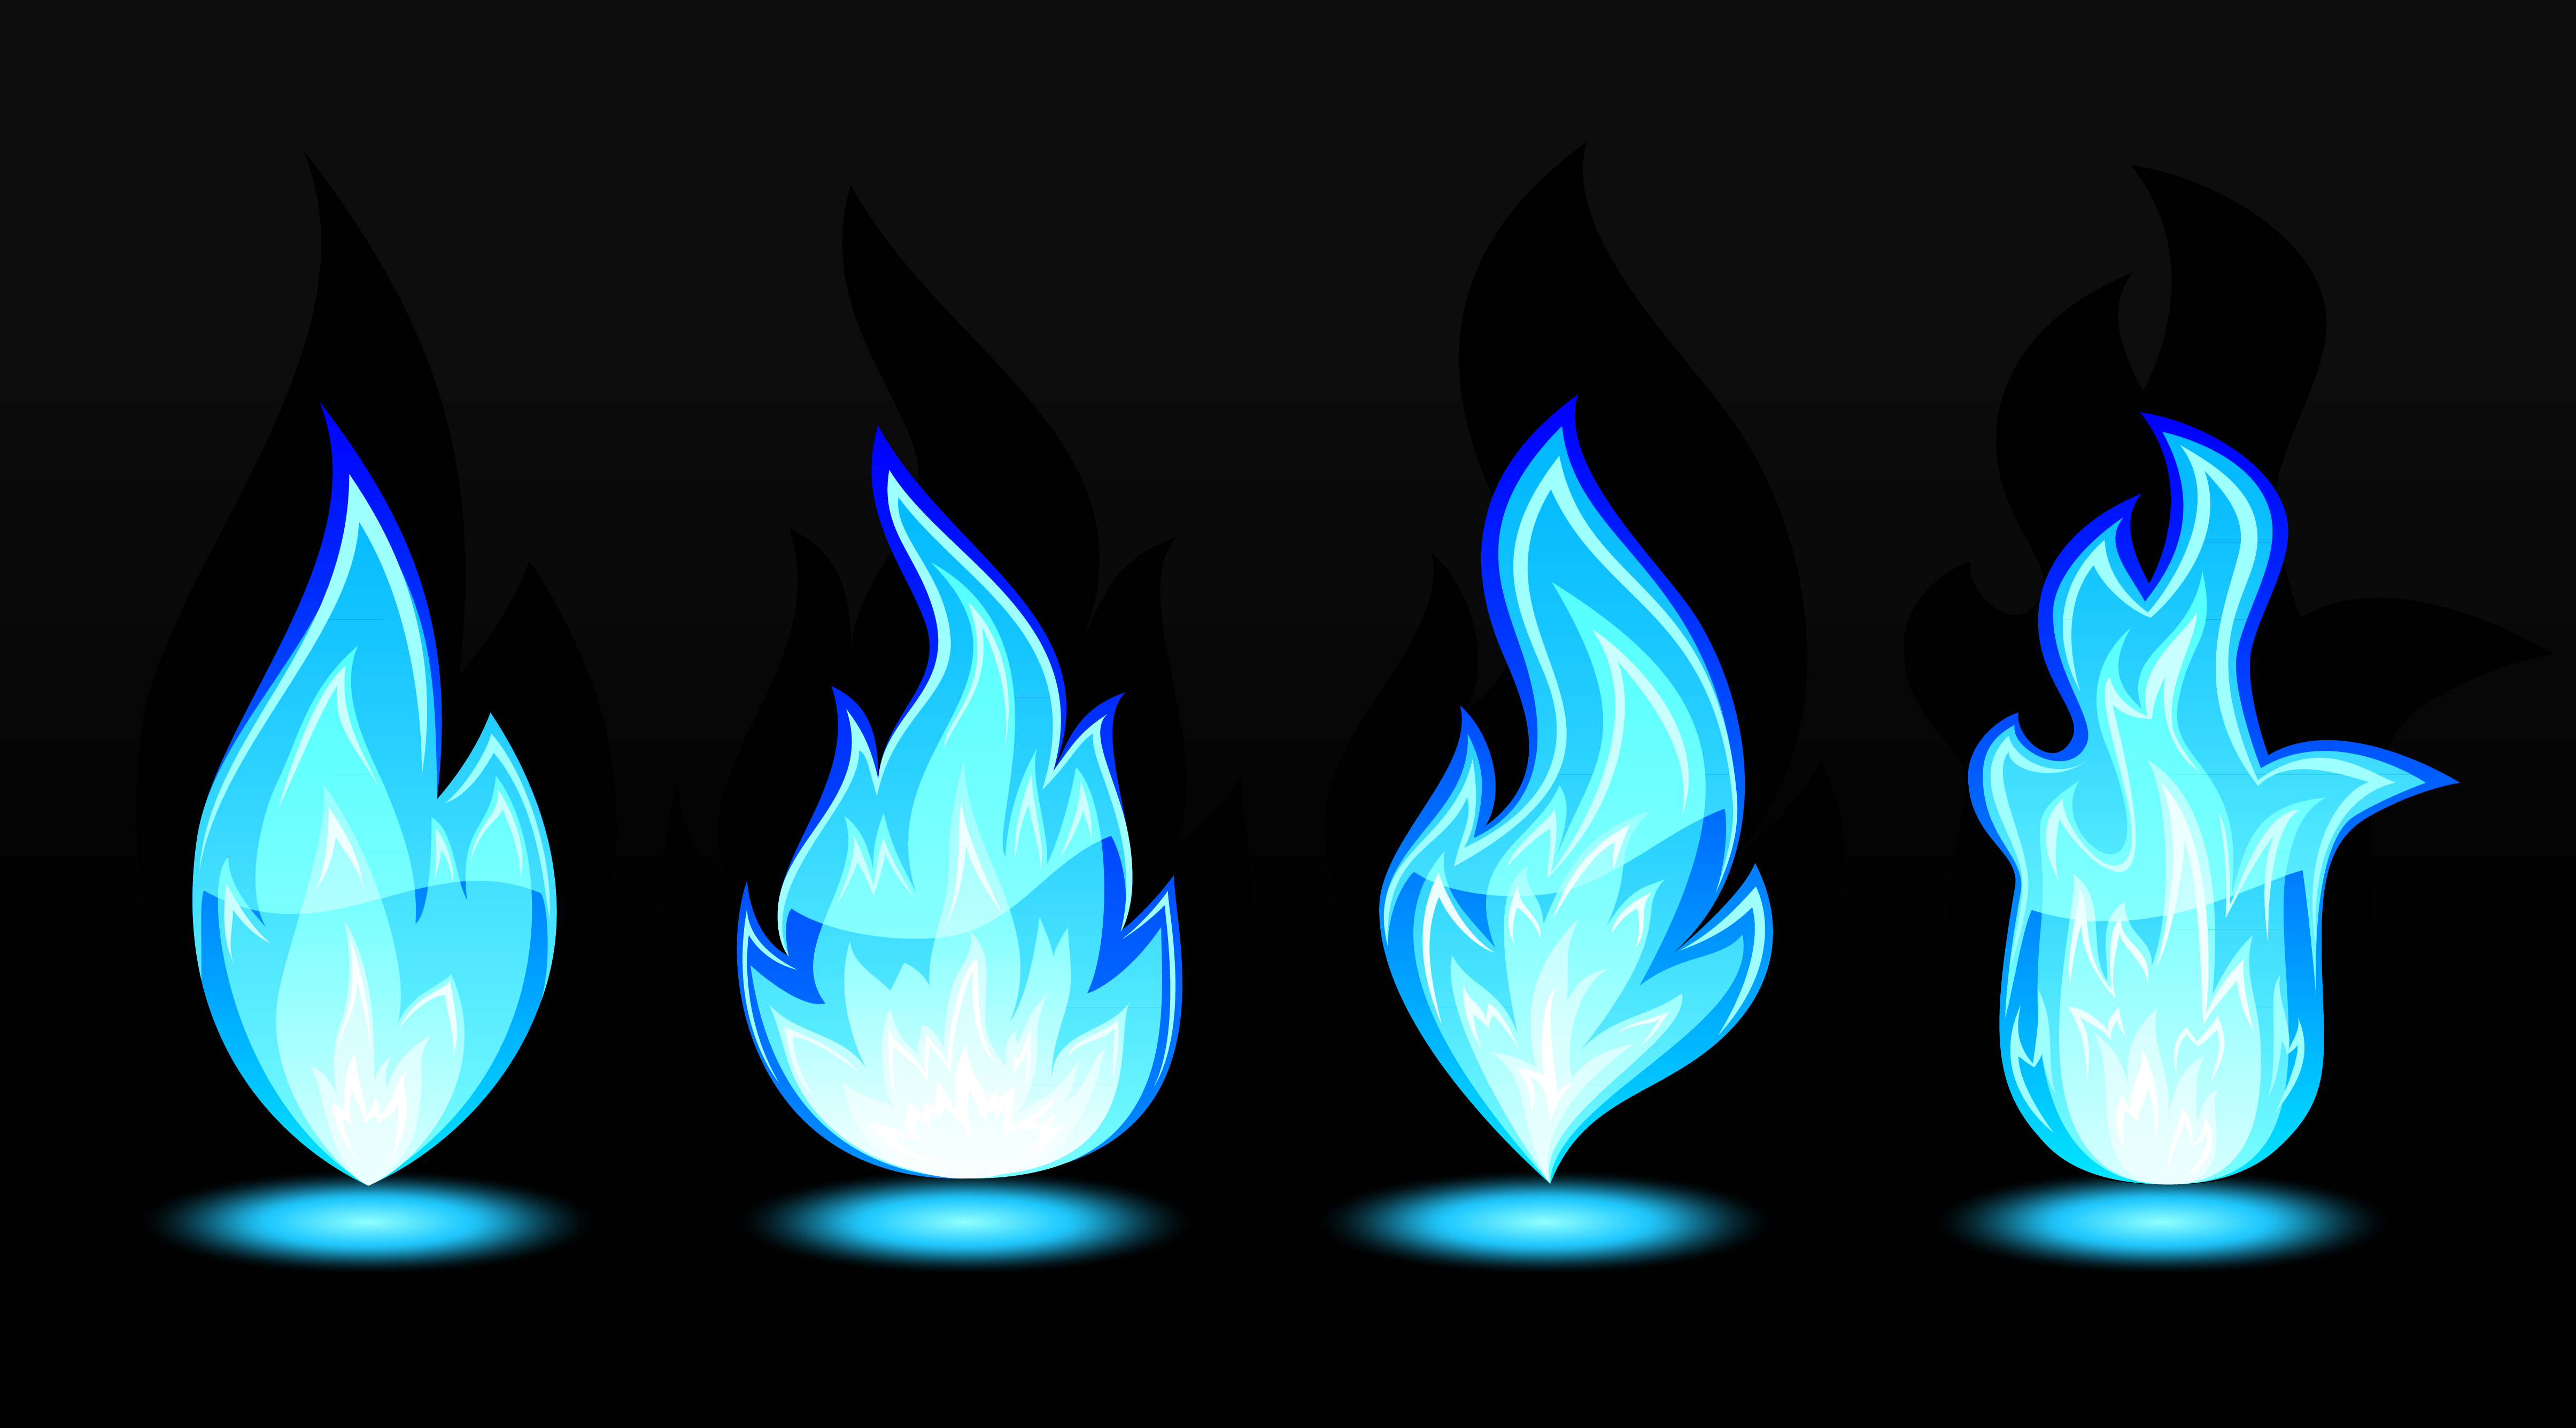 Flames Art HD Artist 4k Wallpapers Images Backgrounds Photos